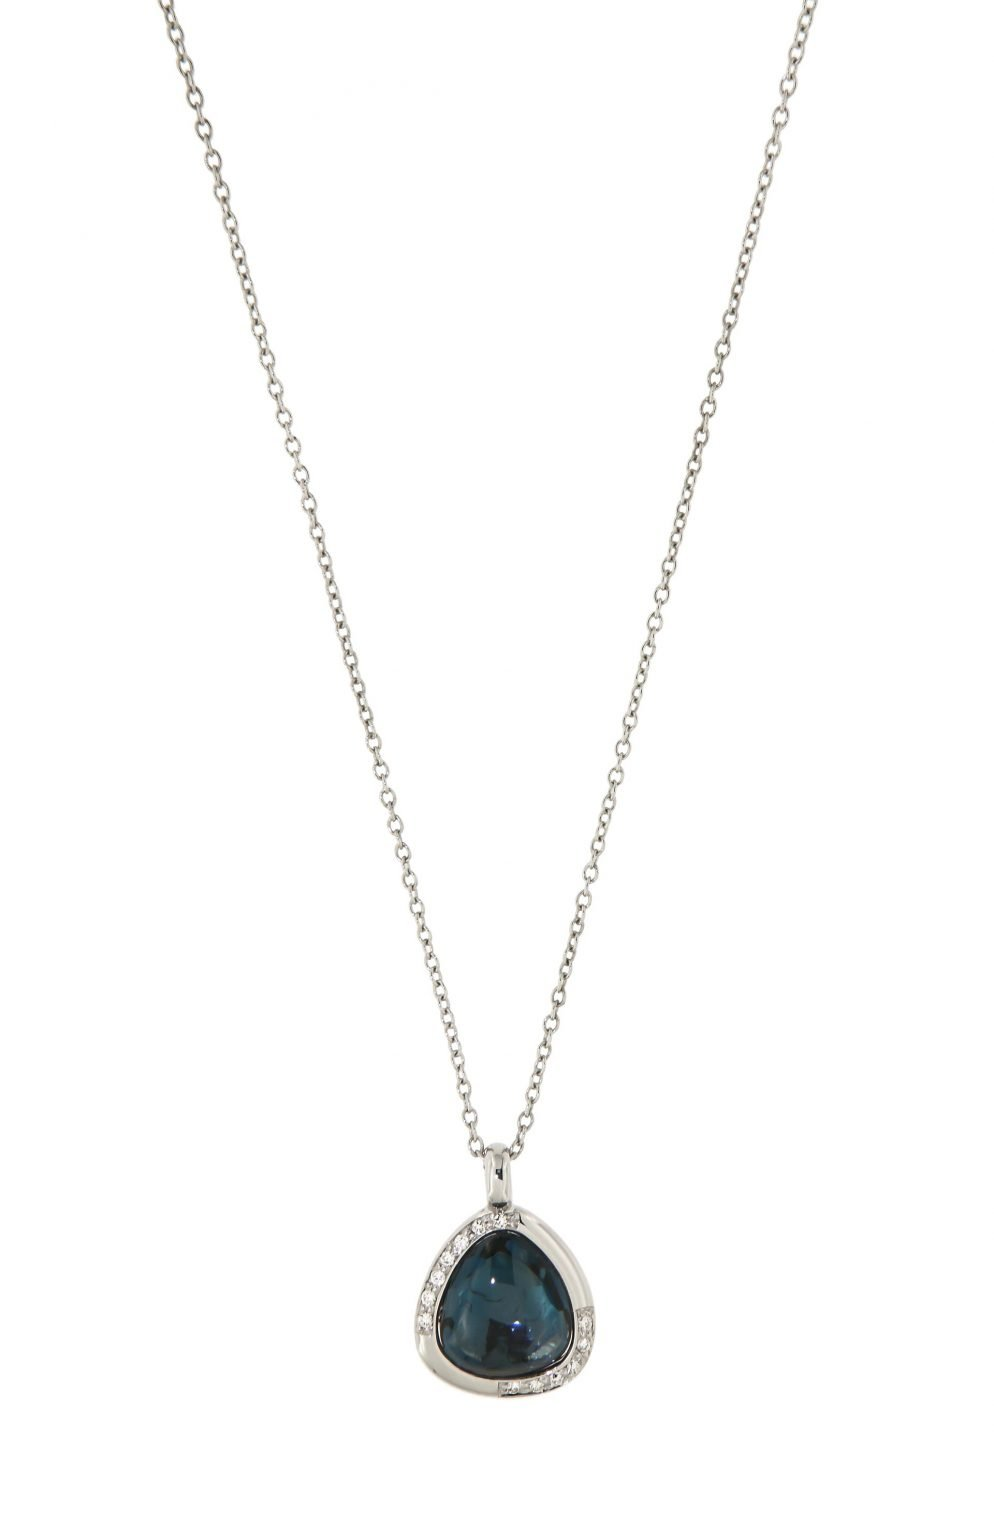 white gold pendant with London blue topaz and diamonds